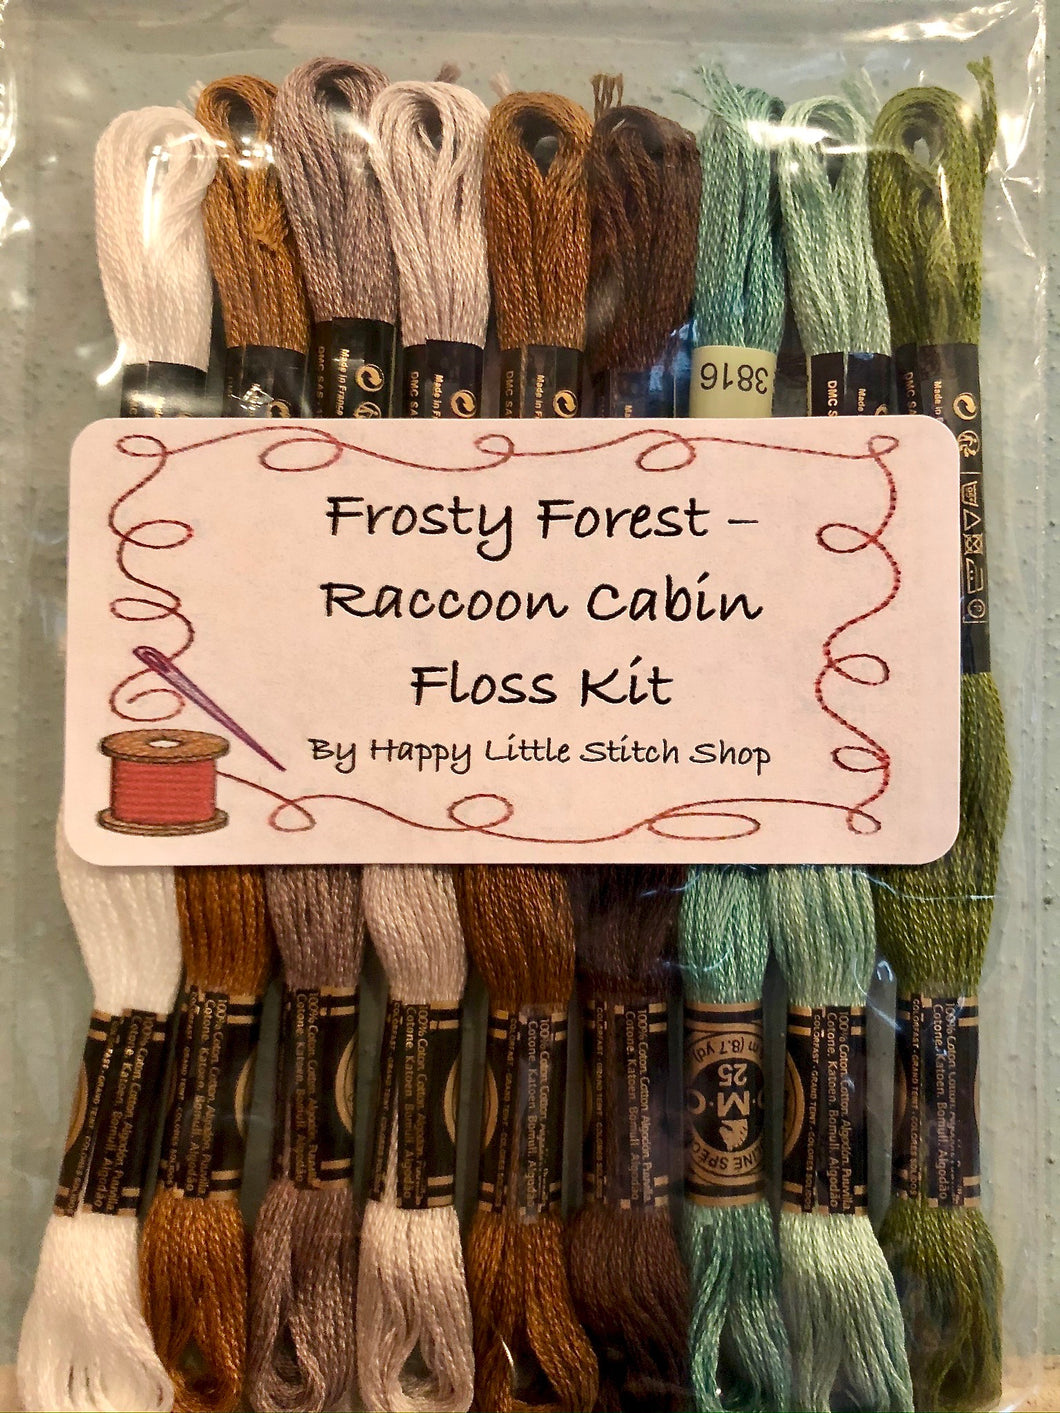 Floss Kit - Frosty Forest 1 - Raccoon Cabin